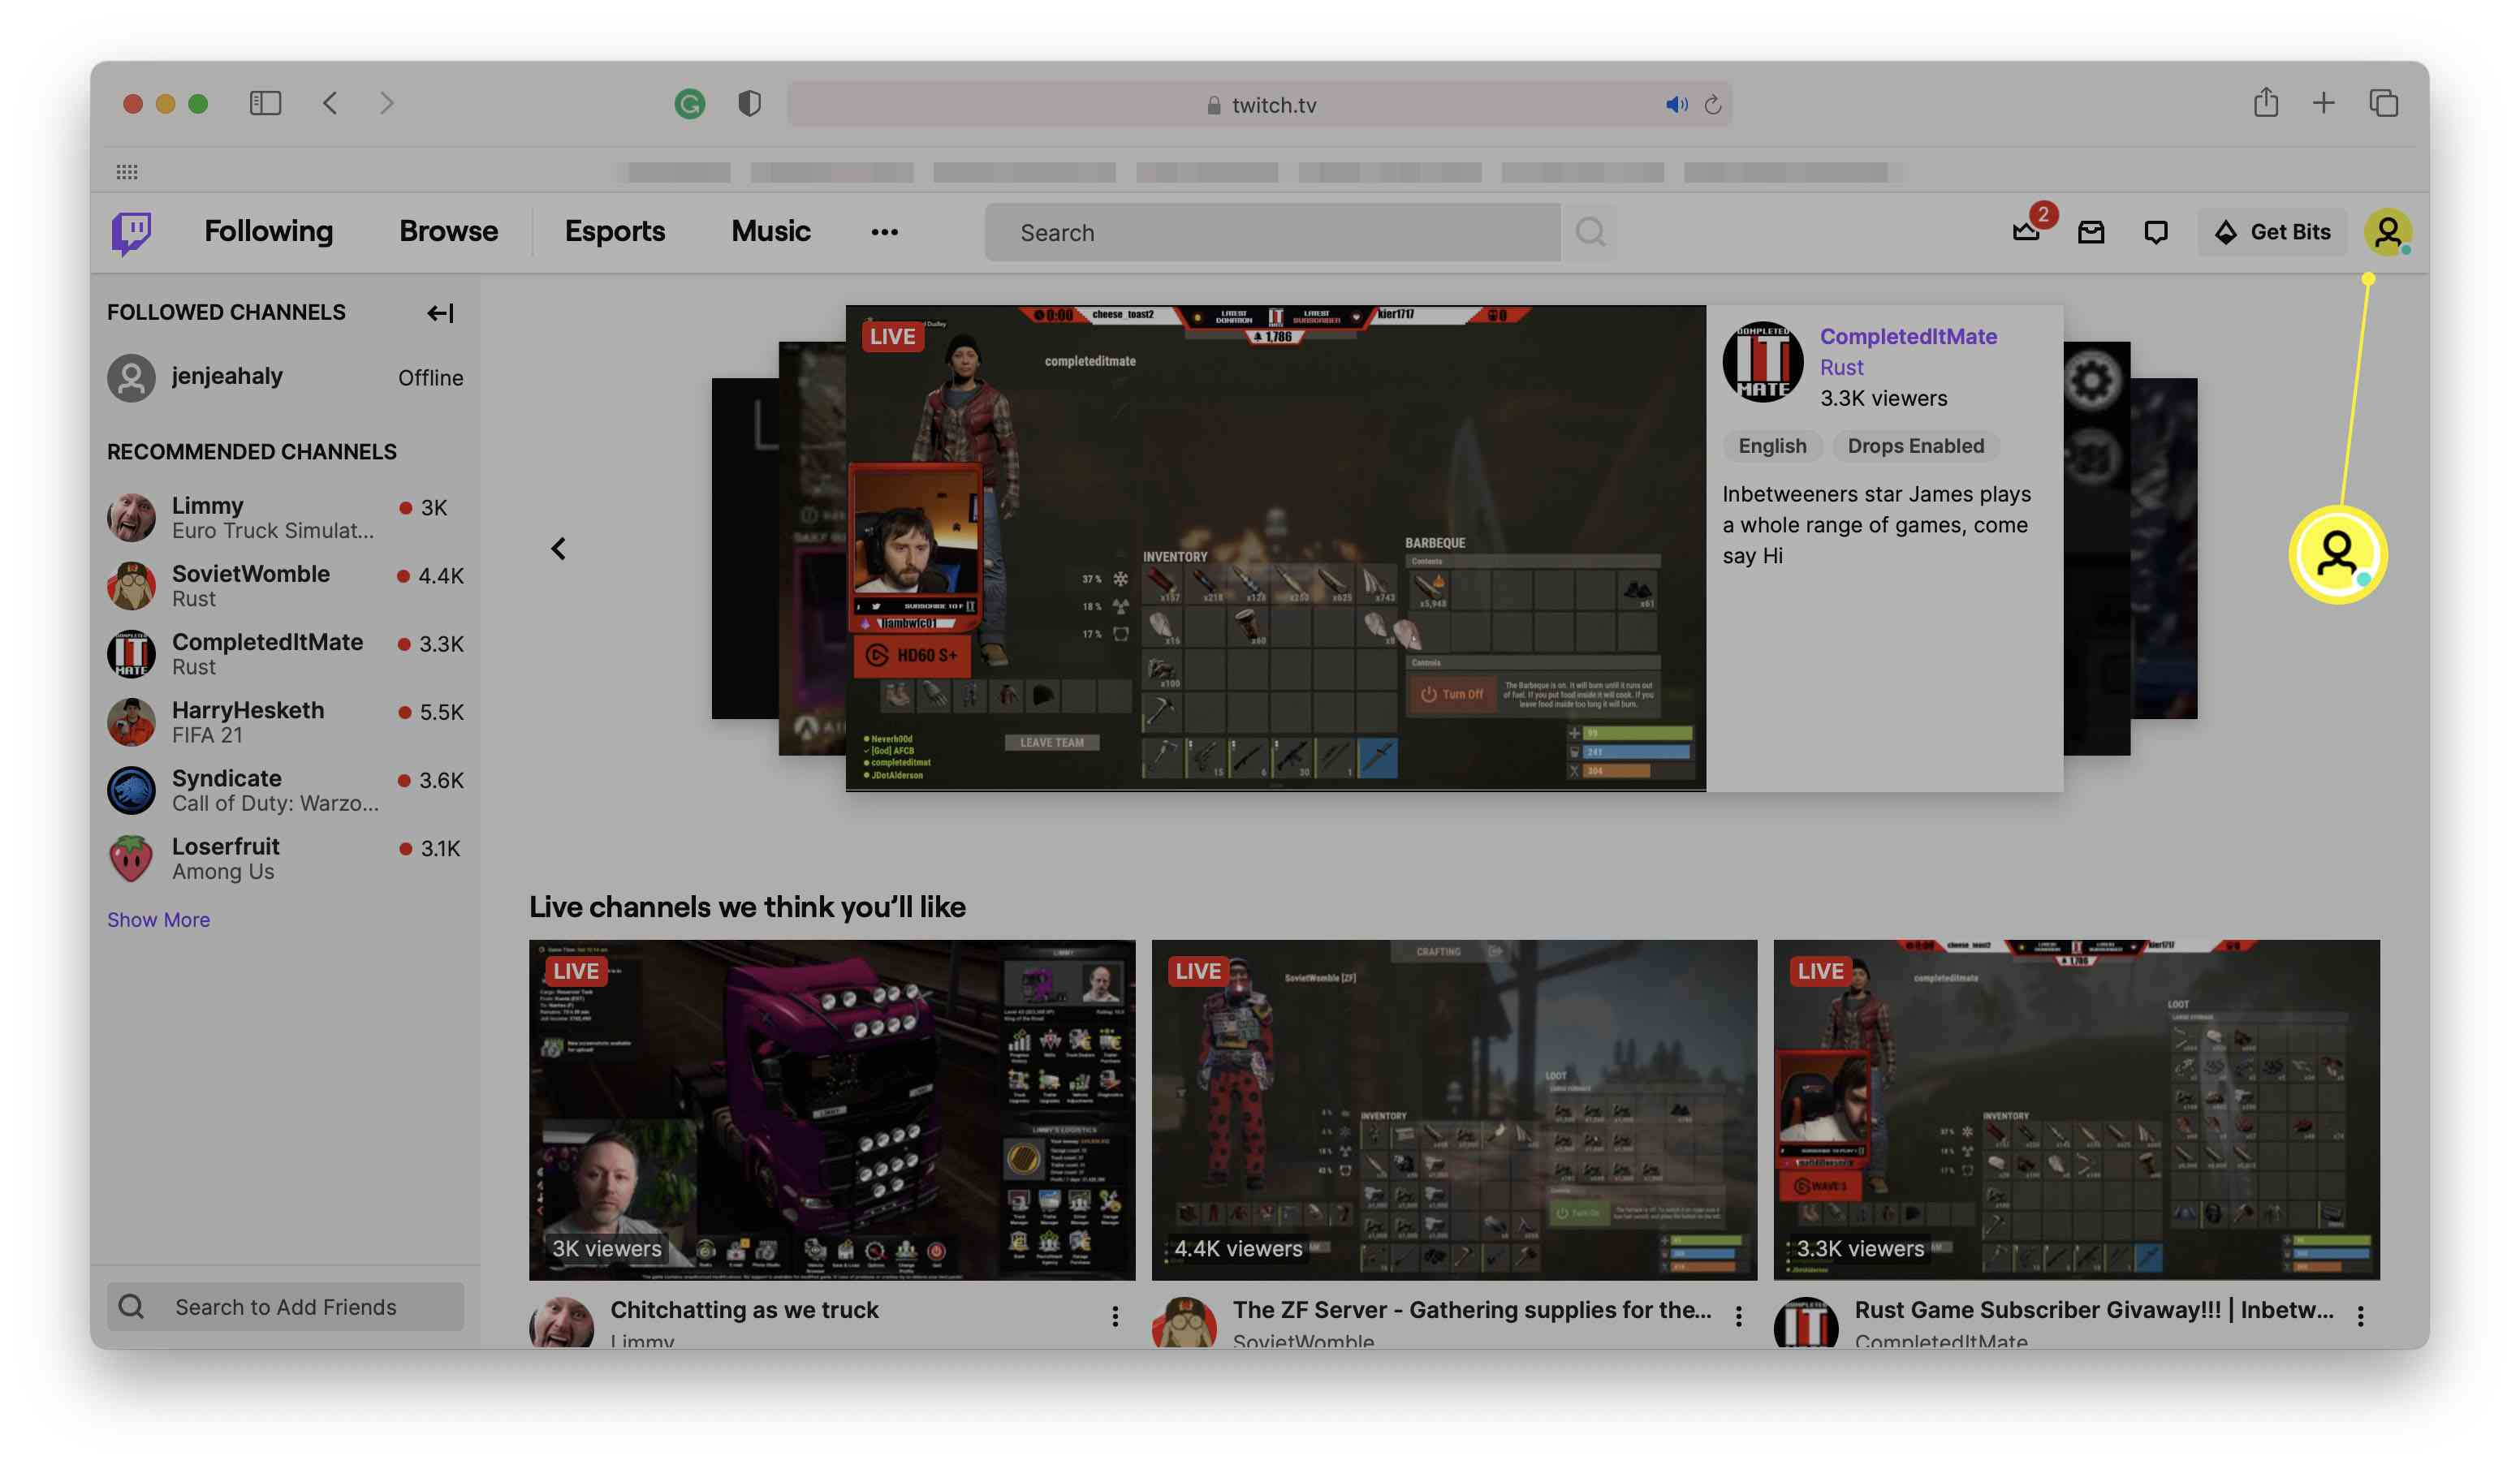 Twitch homepage with profile picture highlighted